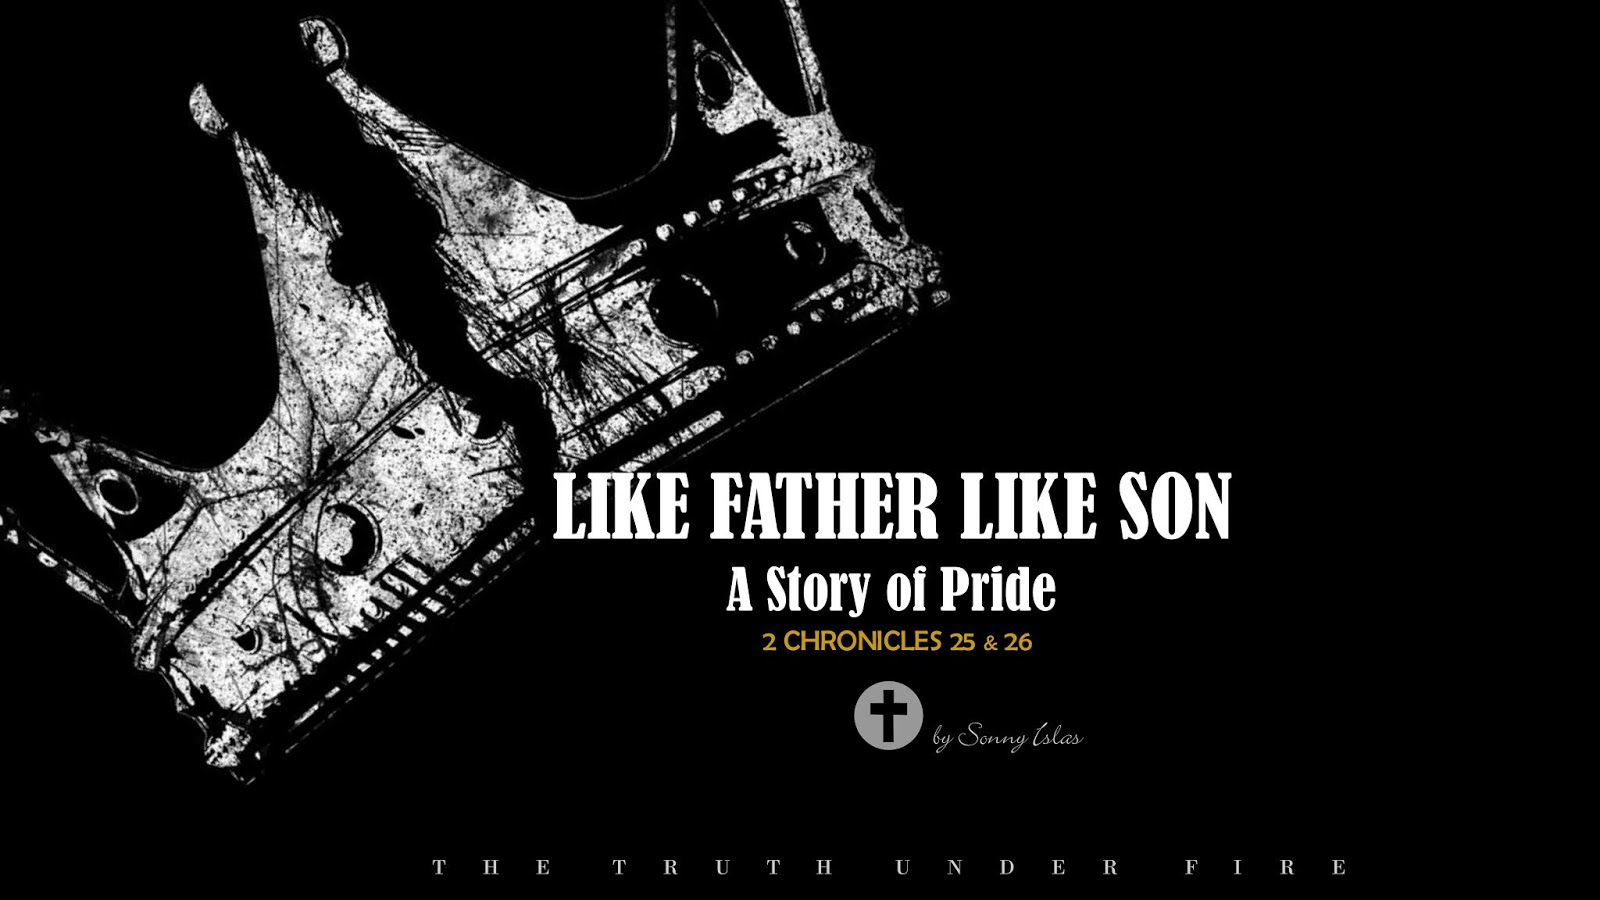 The TRUTH under FIRE: LIKE FATHER, LIKE SON – A STORY OF PRIDE